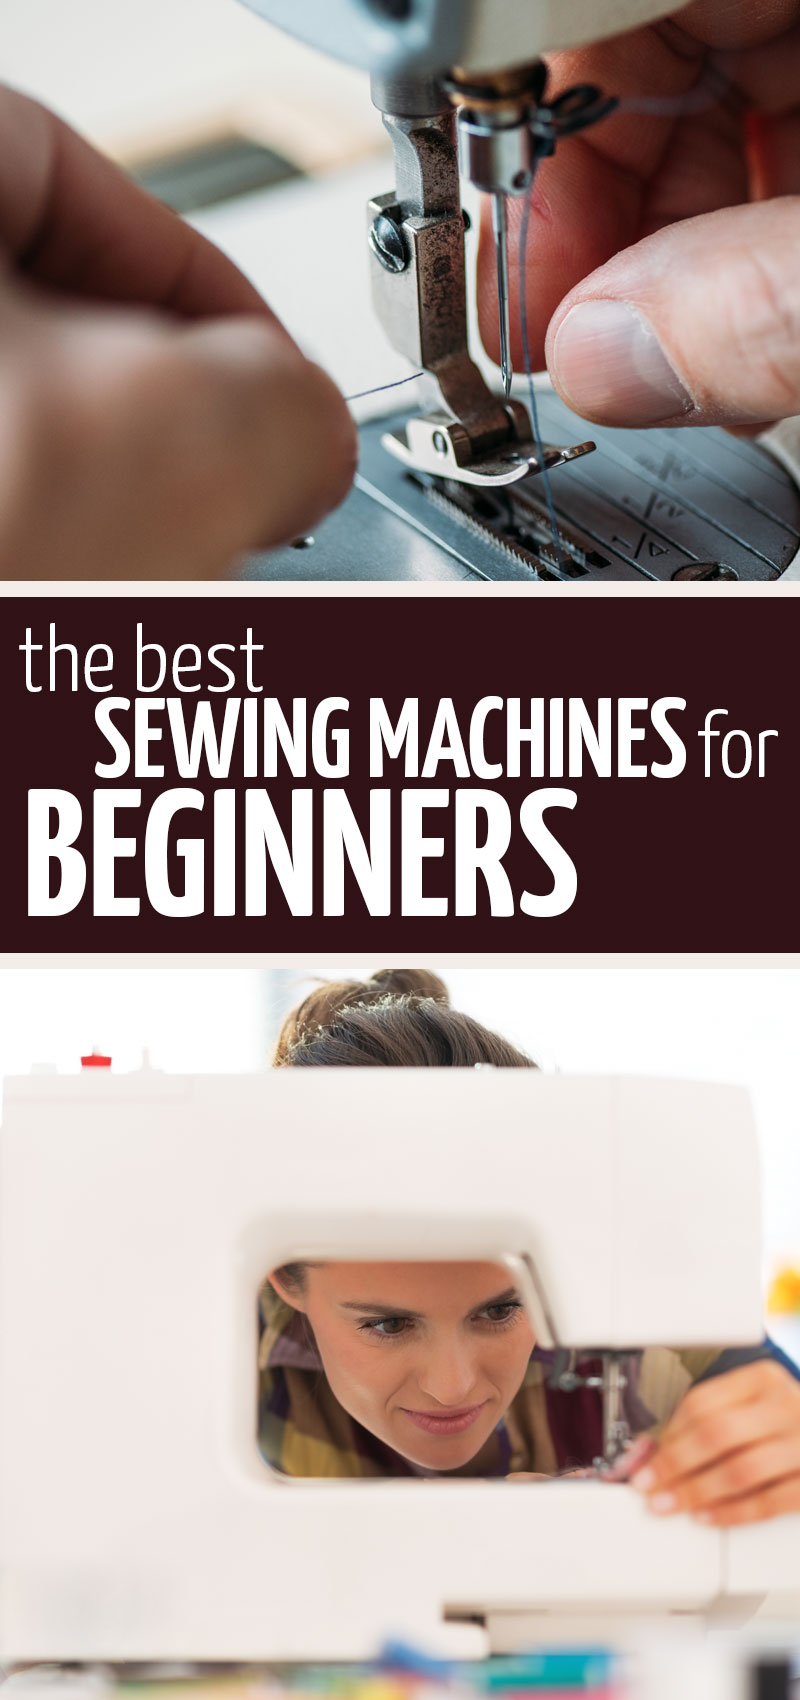 What is the best sewing machine for beginners? These sewing machine reviews round up the three best sewing machines for beginner sewers and share what's best about each.